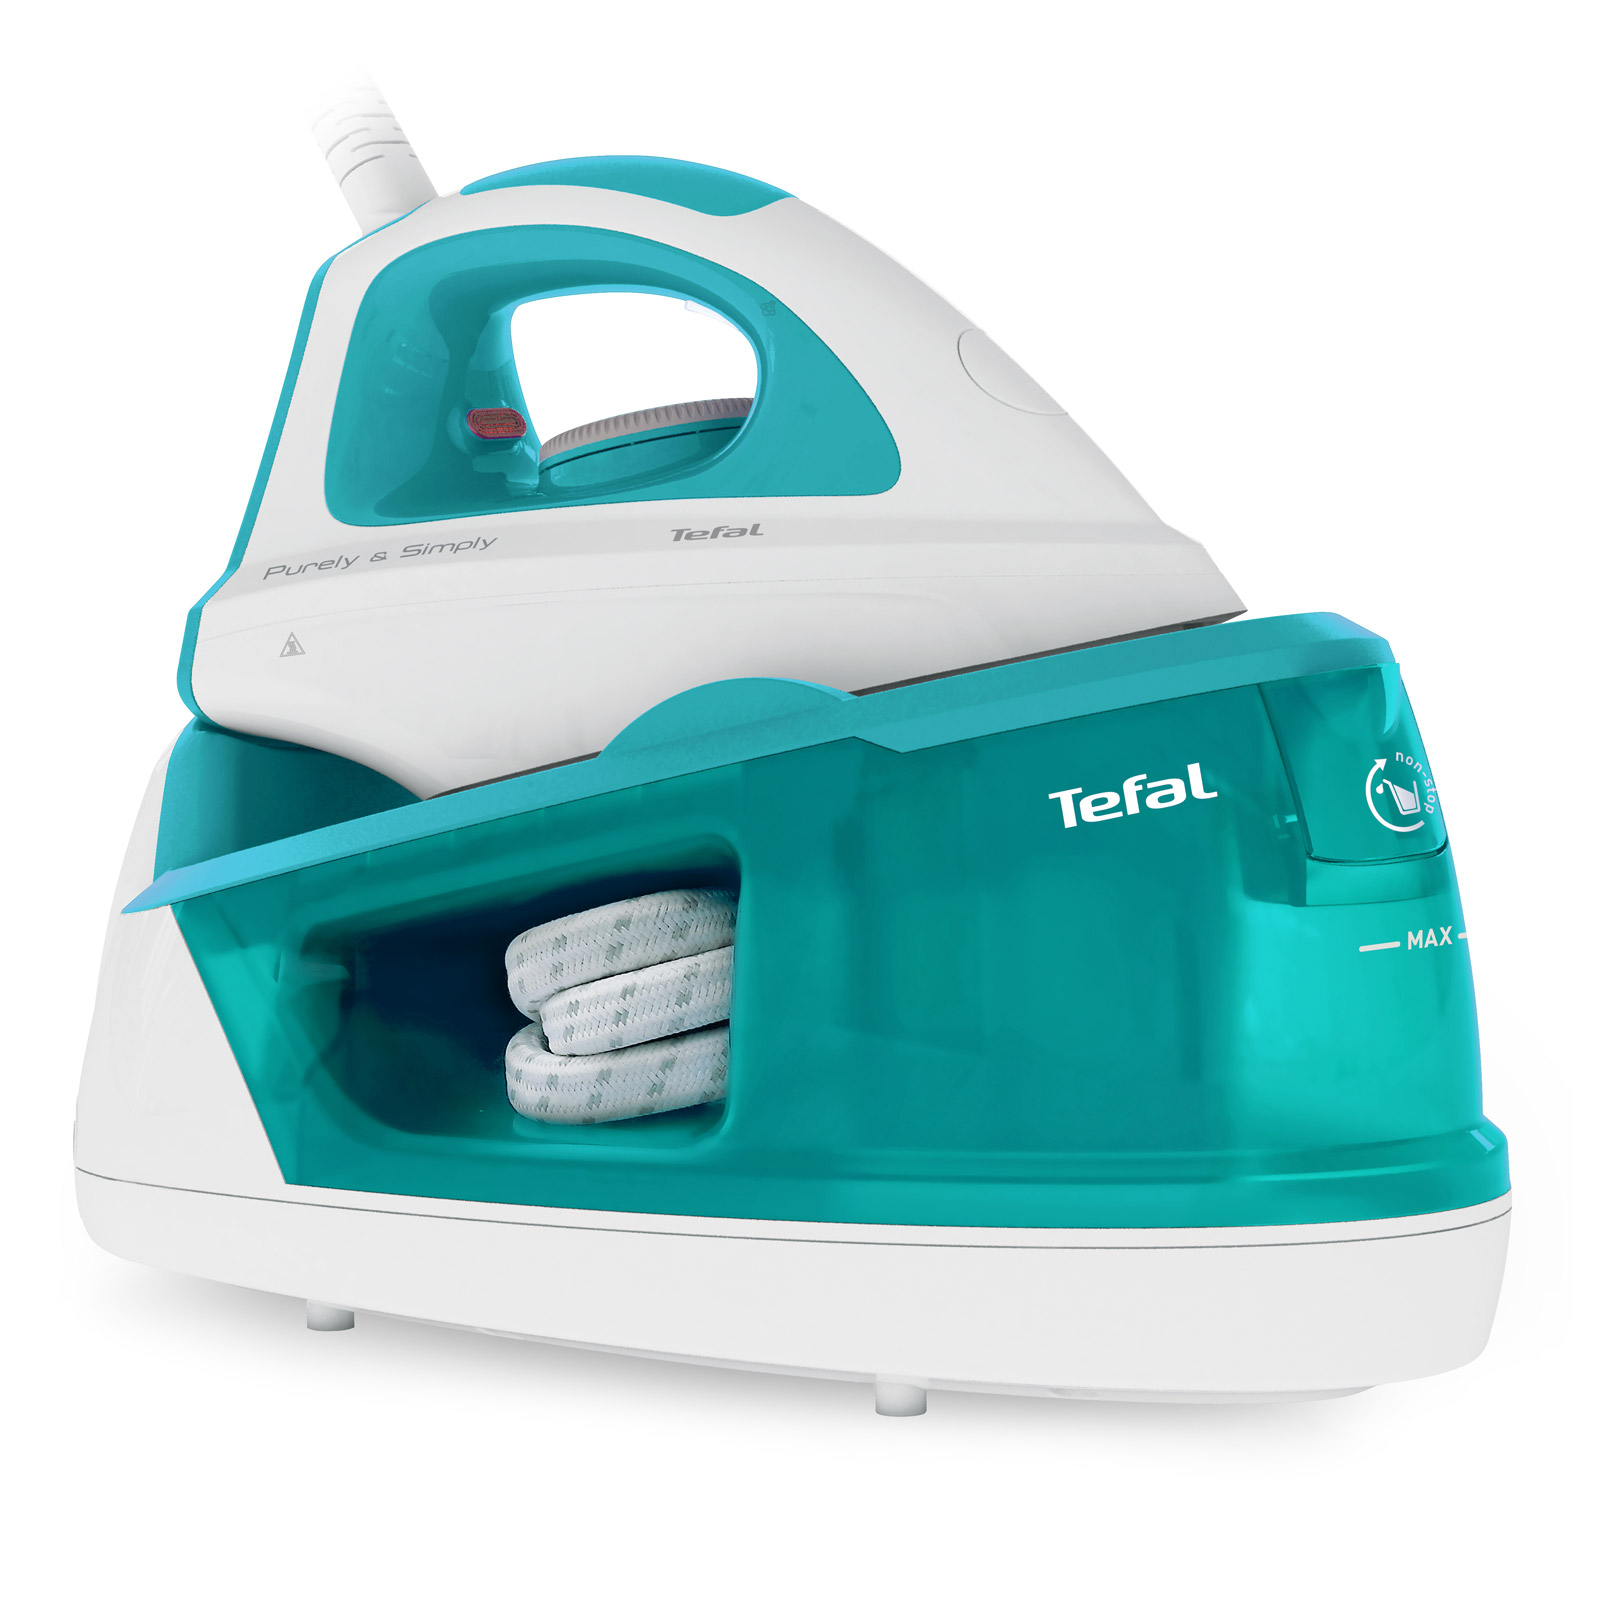 Tefal SV5011 Compact Steam Generator Iron, 5.0 Bar